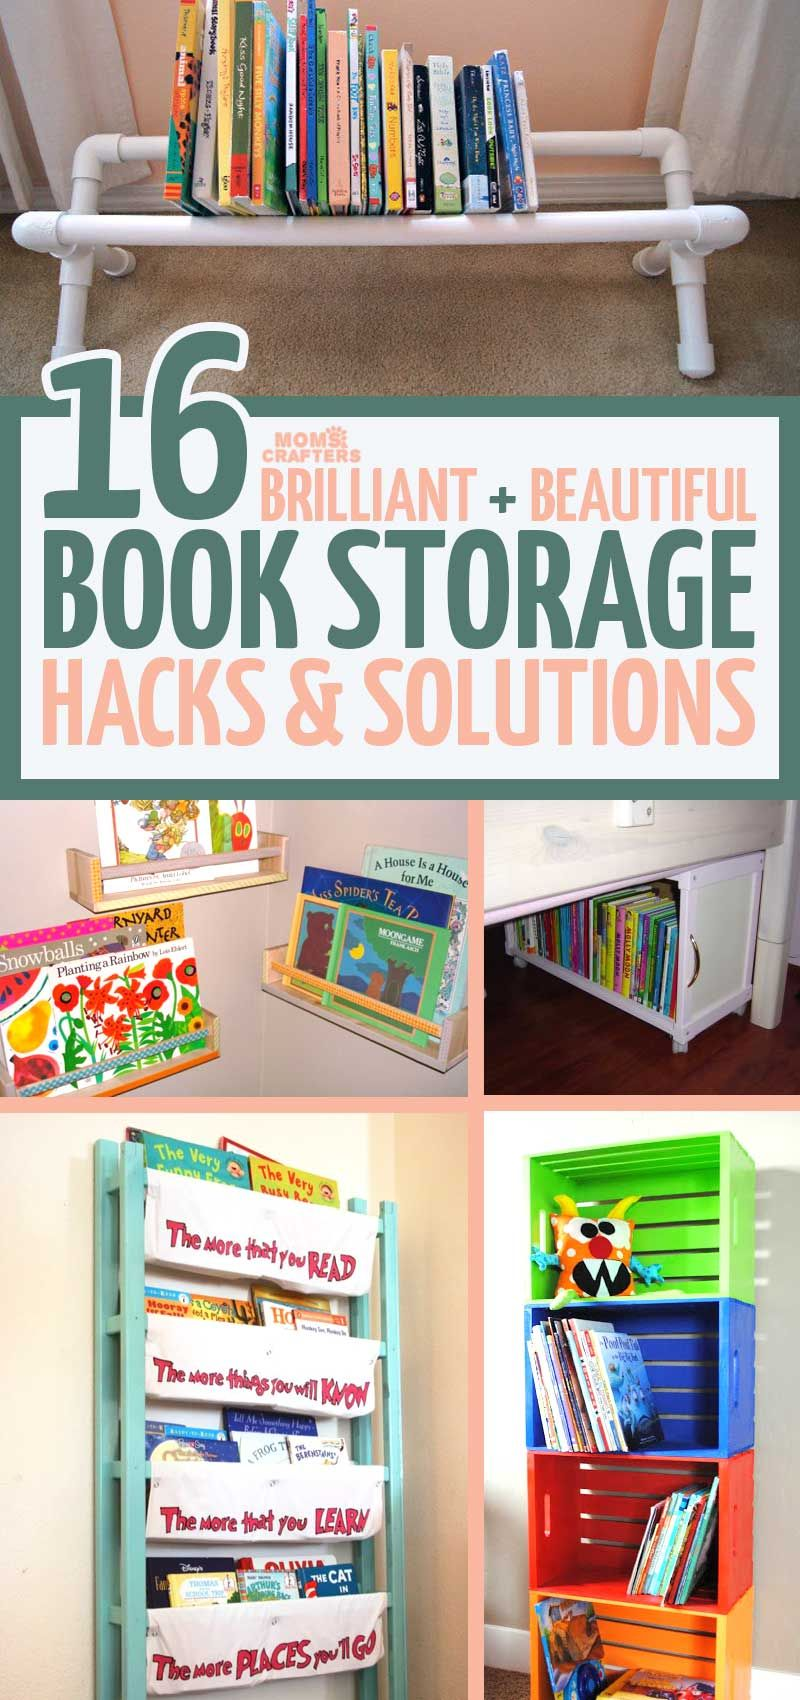 These adorable beautiful and practical kids book storage hacks and solutions will help you with your playroom organization while encouraging kids to read!  sc 1 st  Pinterest & 16 Kids Book Storage Hacks and Solutions | Moms and Crafters: On the ...